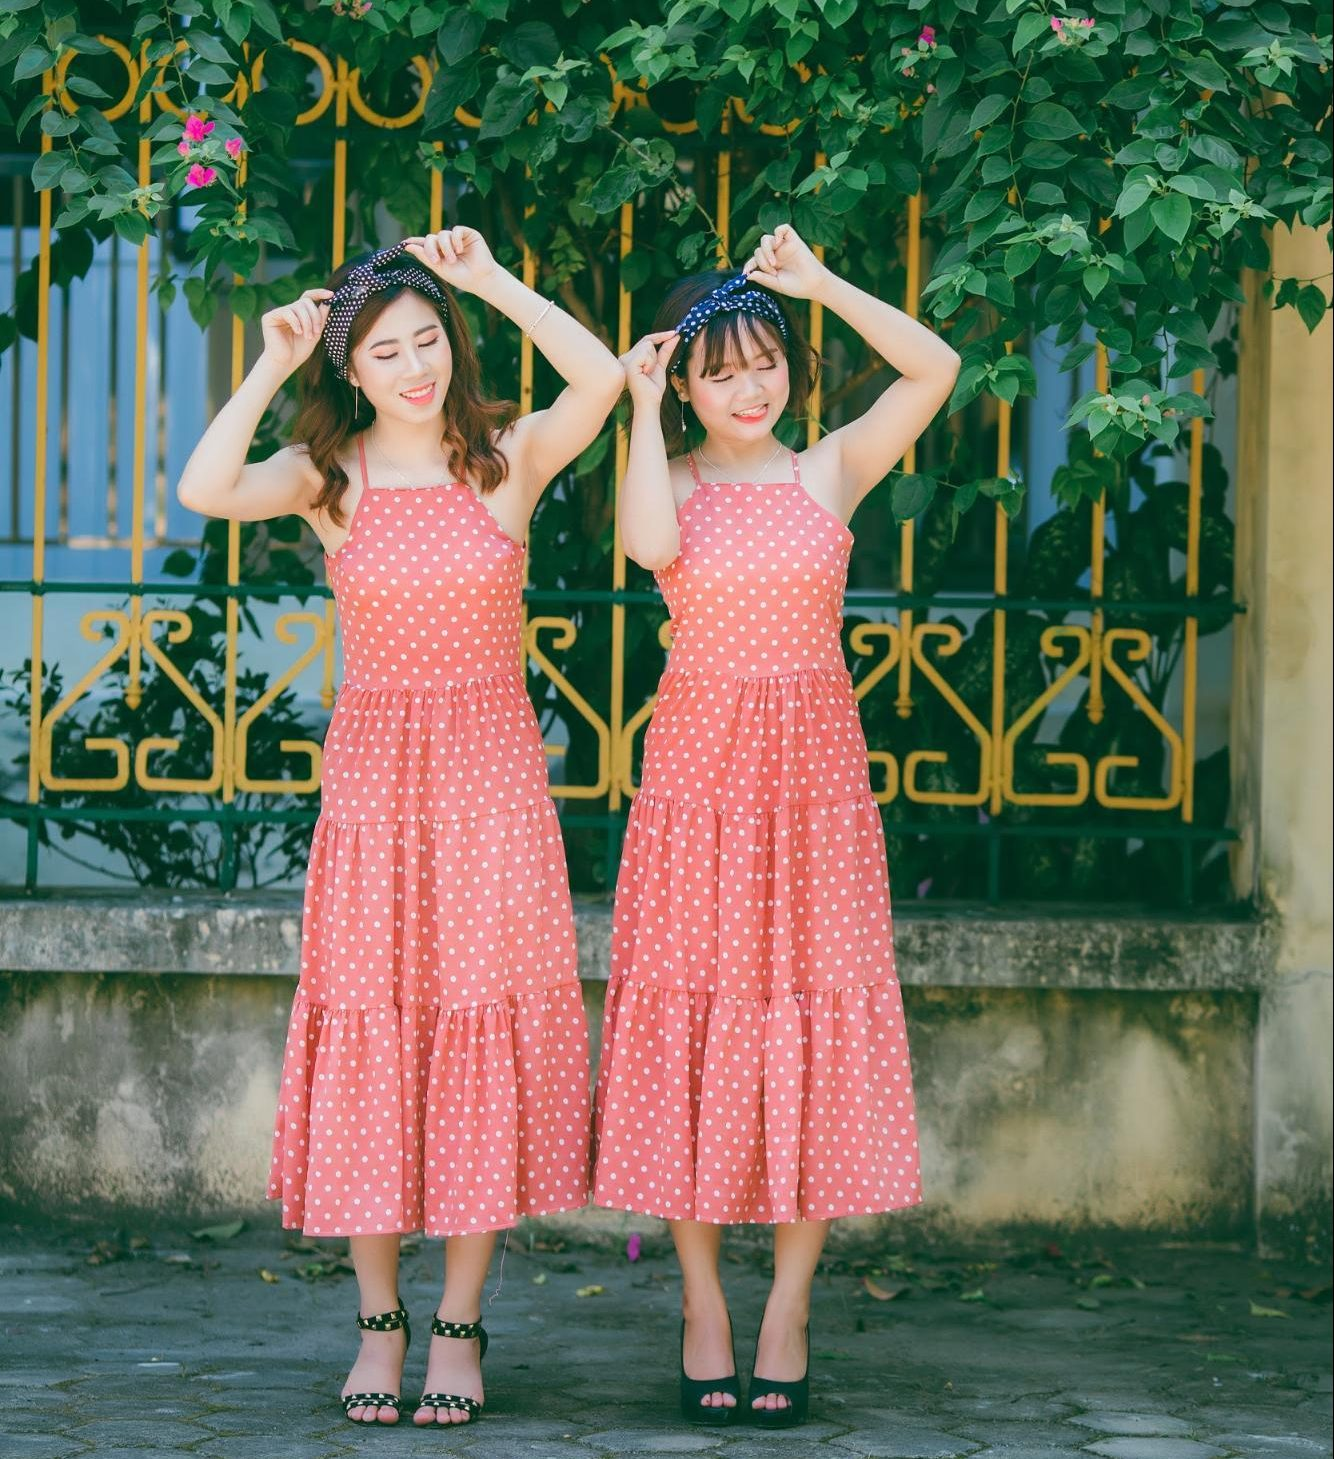 Twin girls in red dresses standing in front of a flower